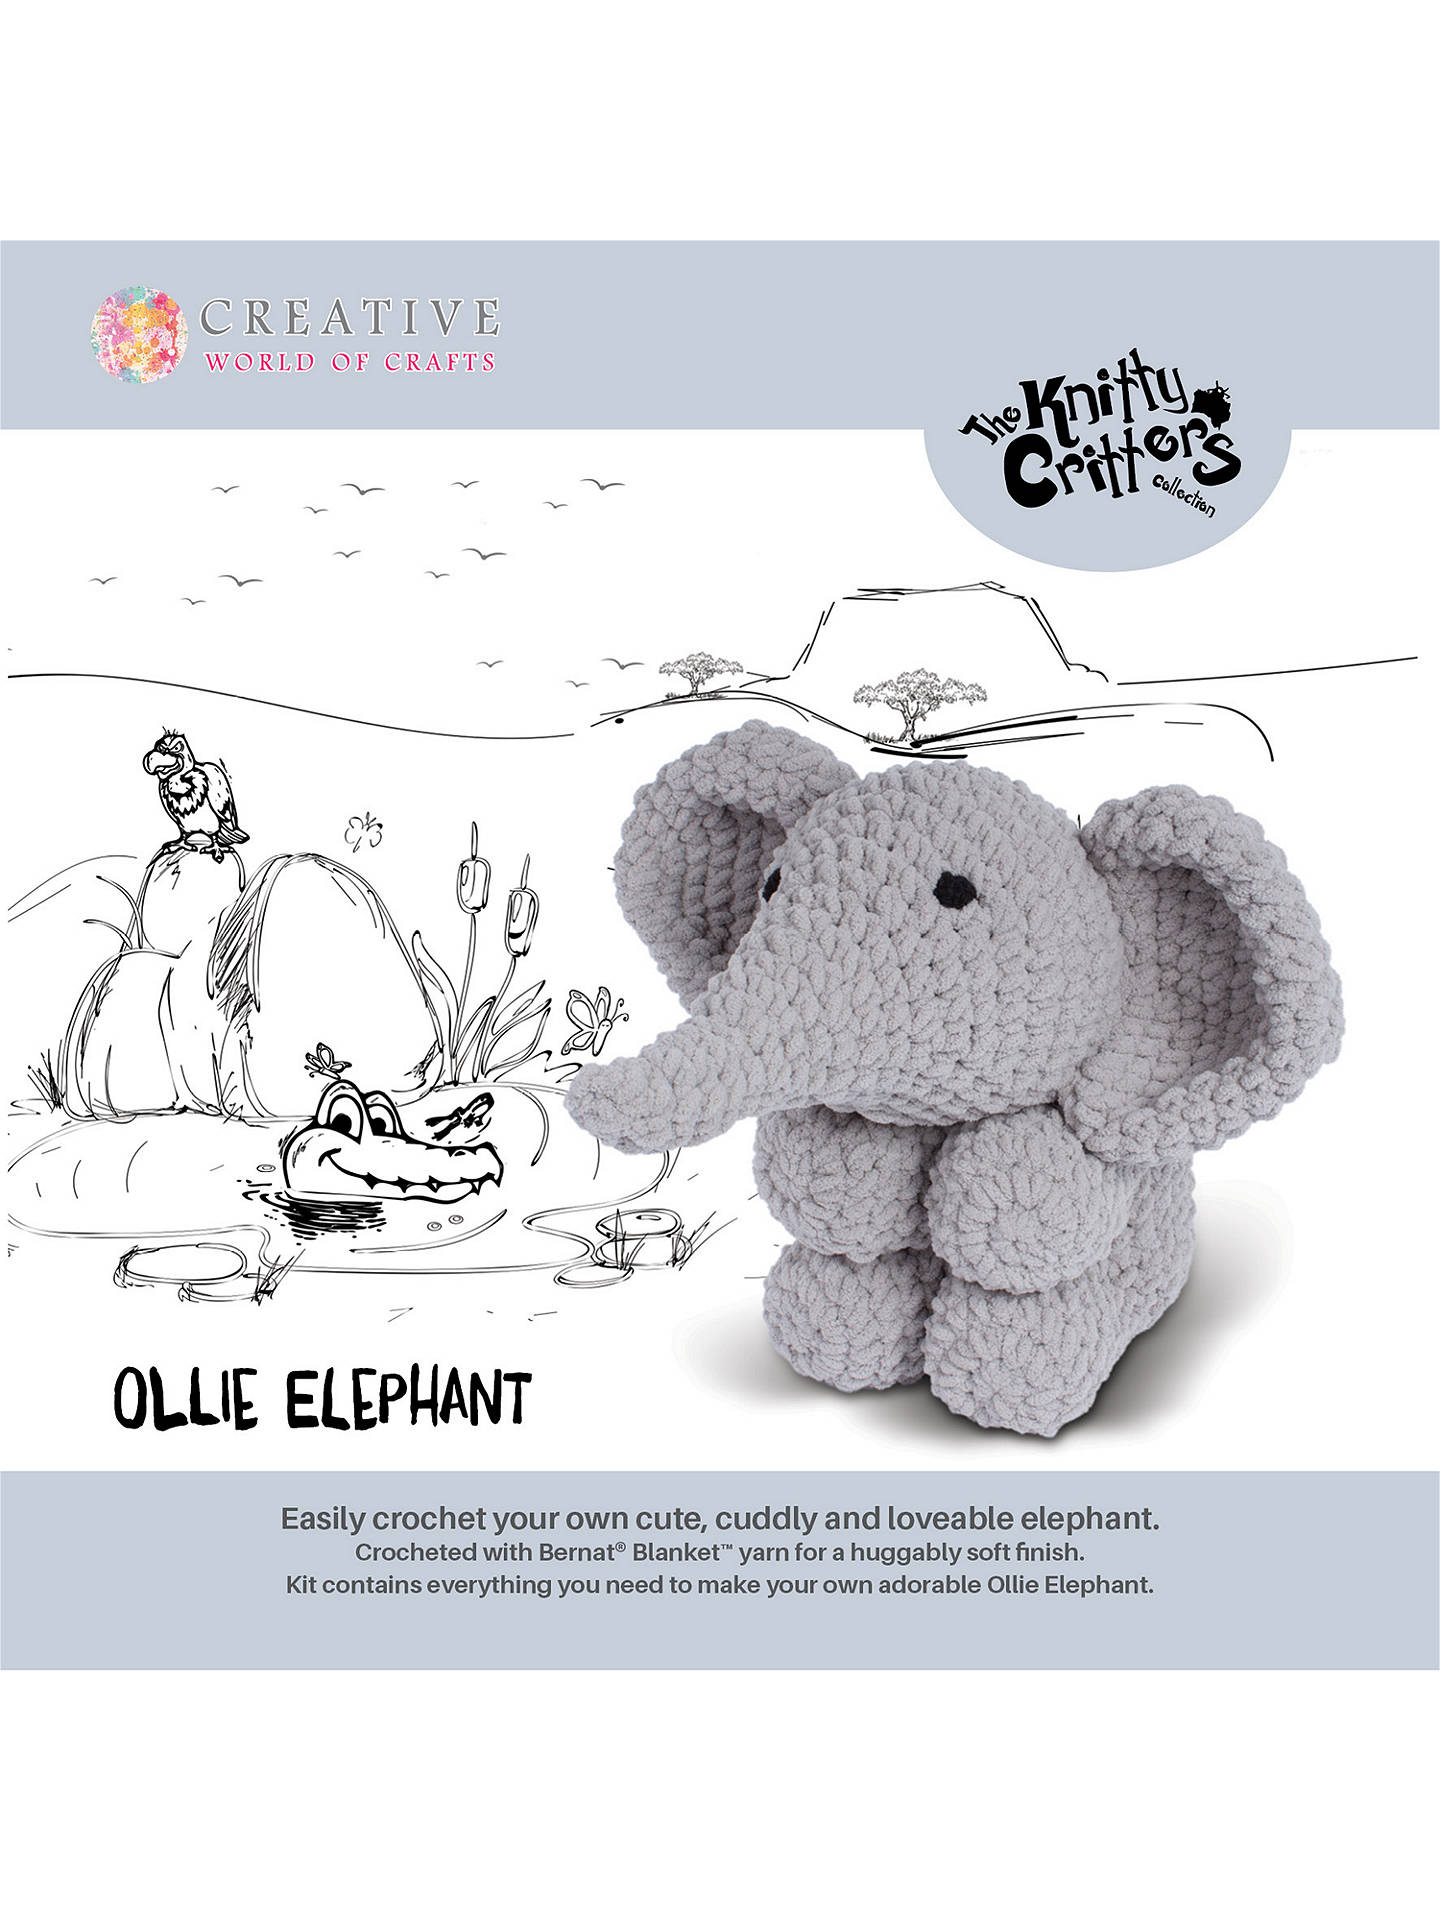 Crochet Elephant Comforter Amigurumi Project: British Wool | TOFT | 1920x1440